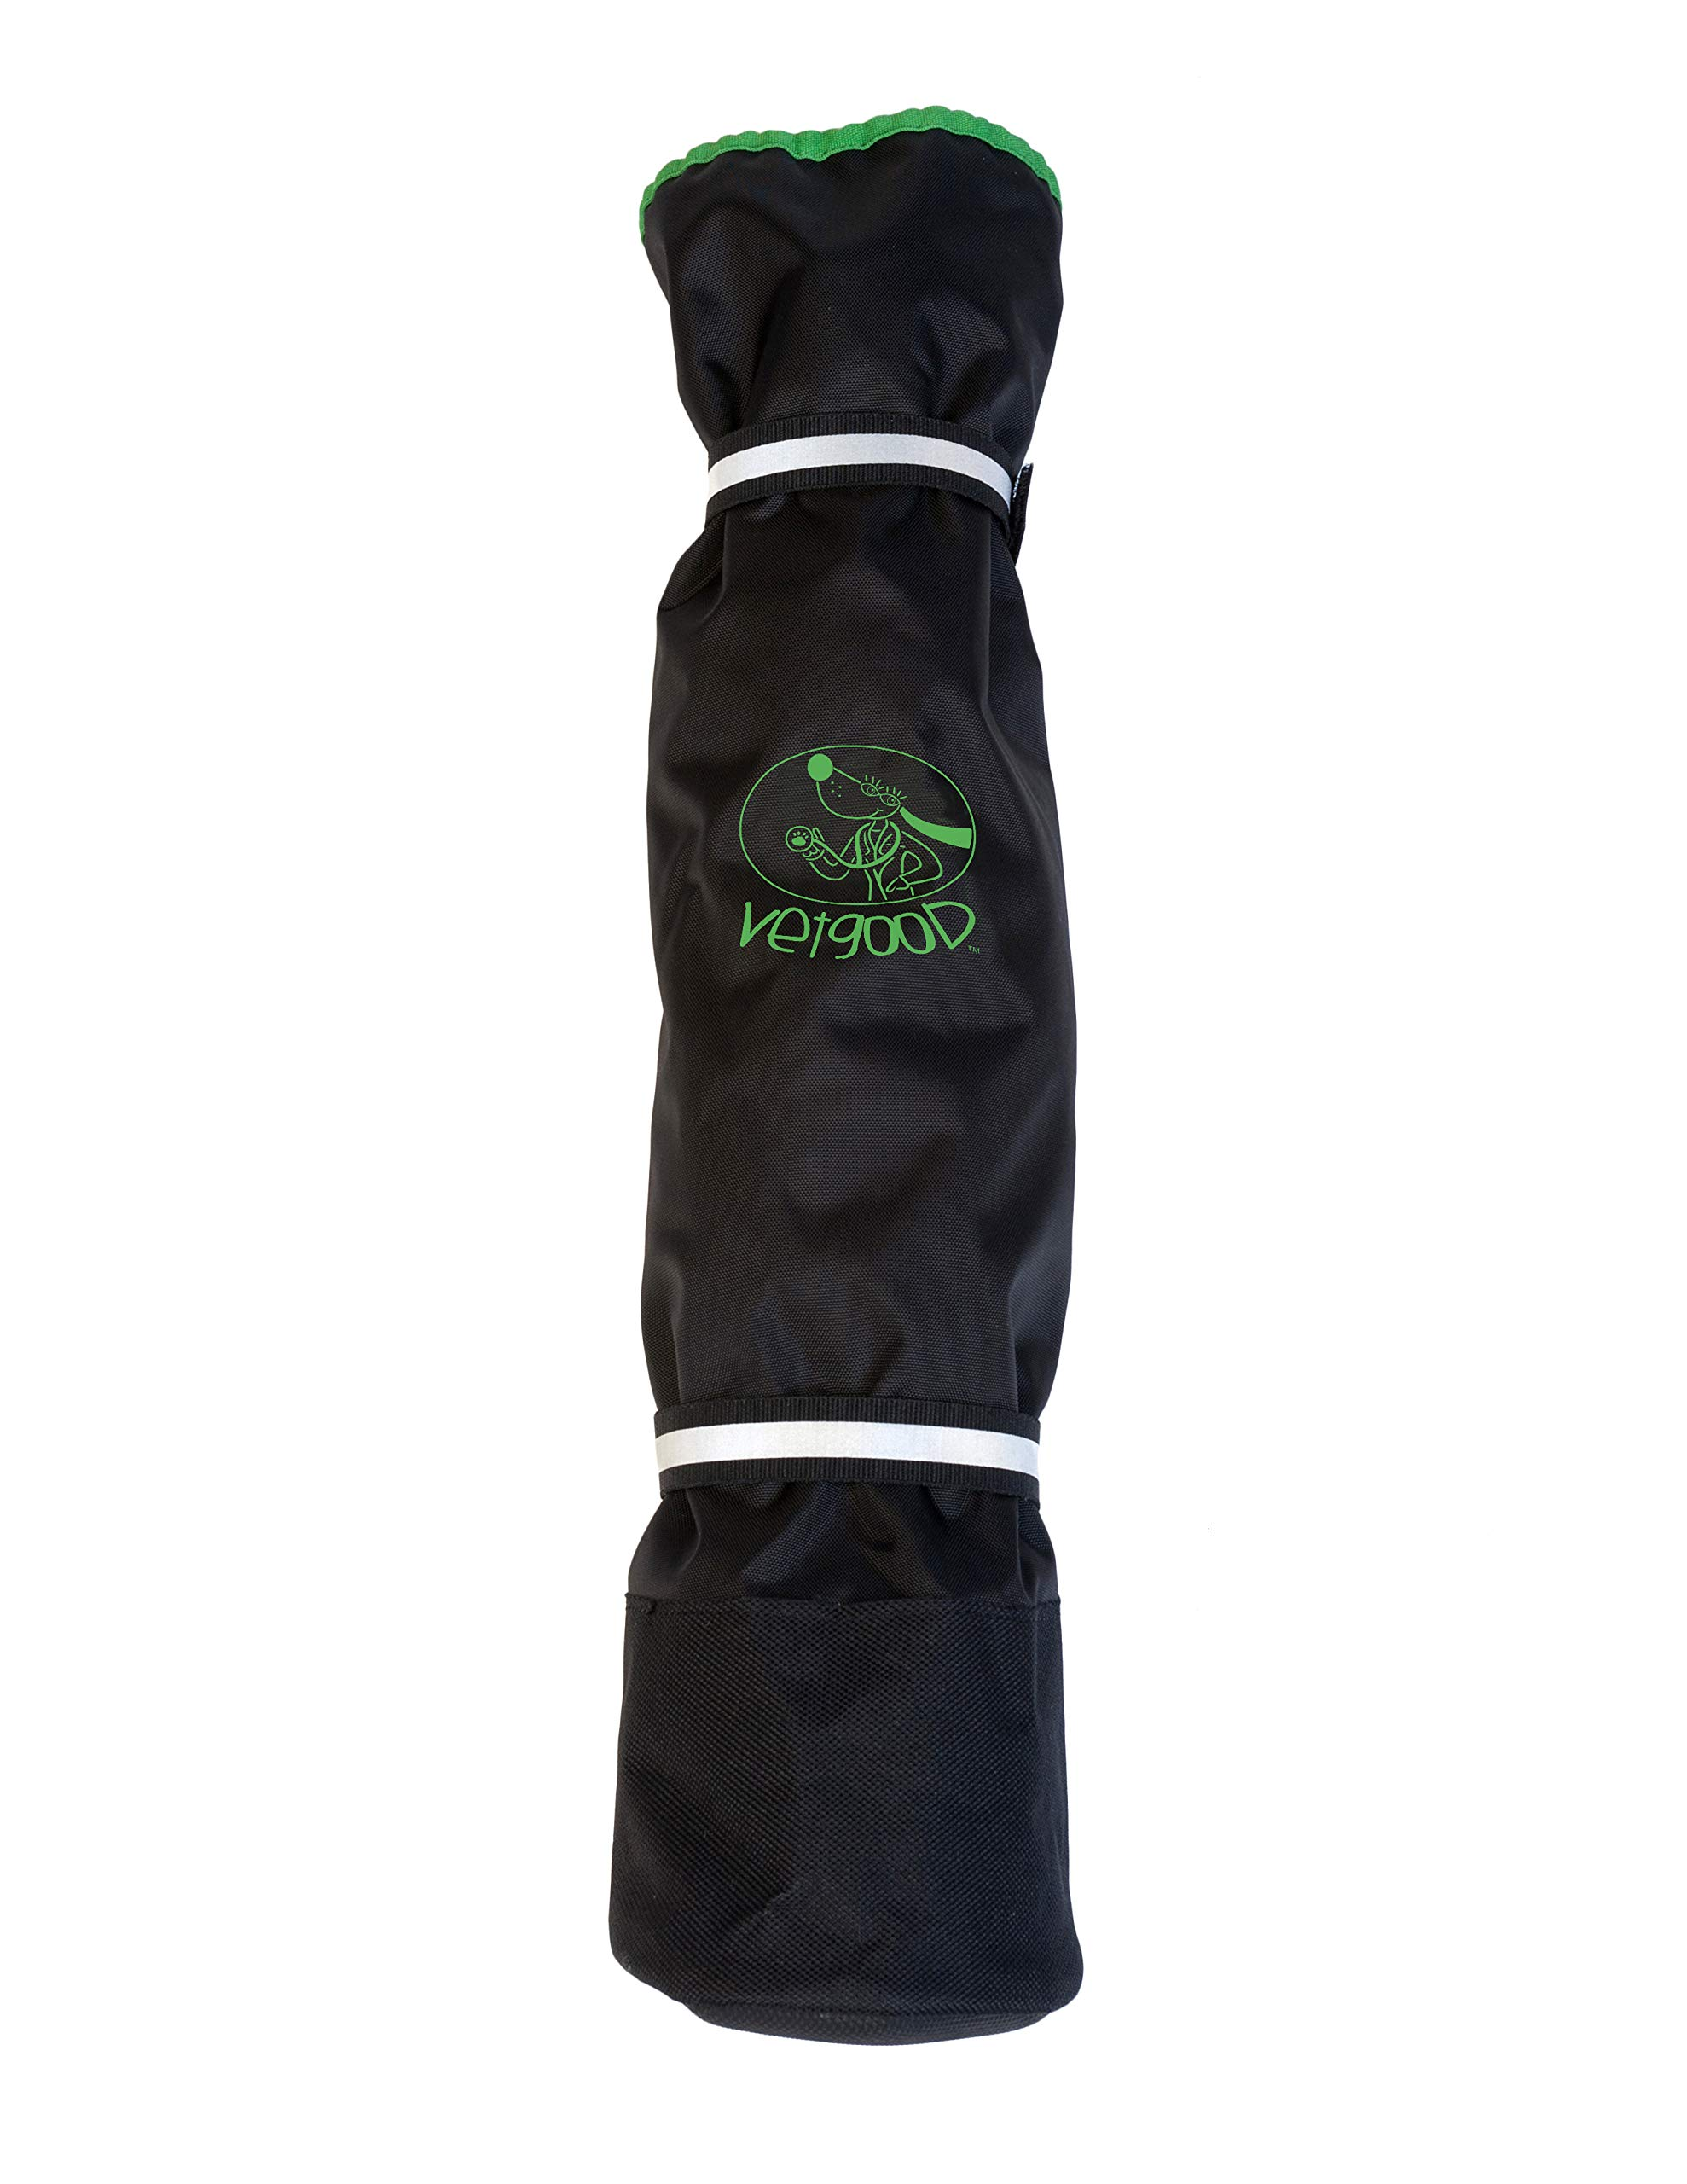 VetGood Protective Slim Boot for Dogs & Cats (L) by VetGood